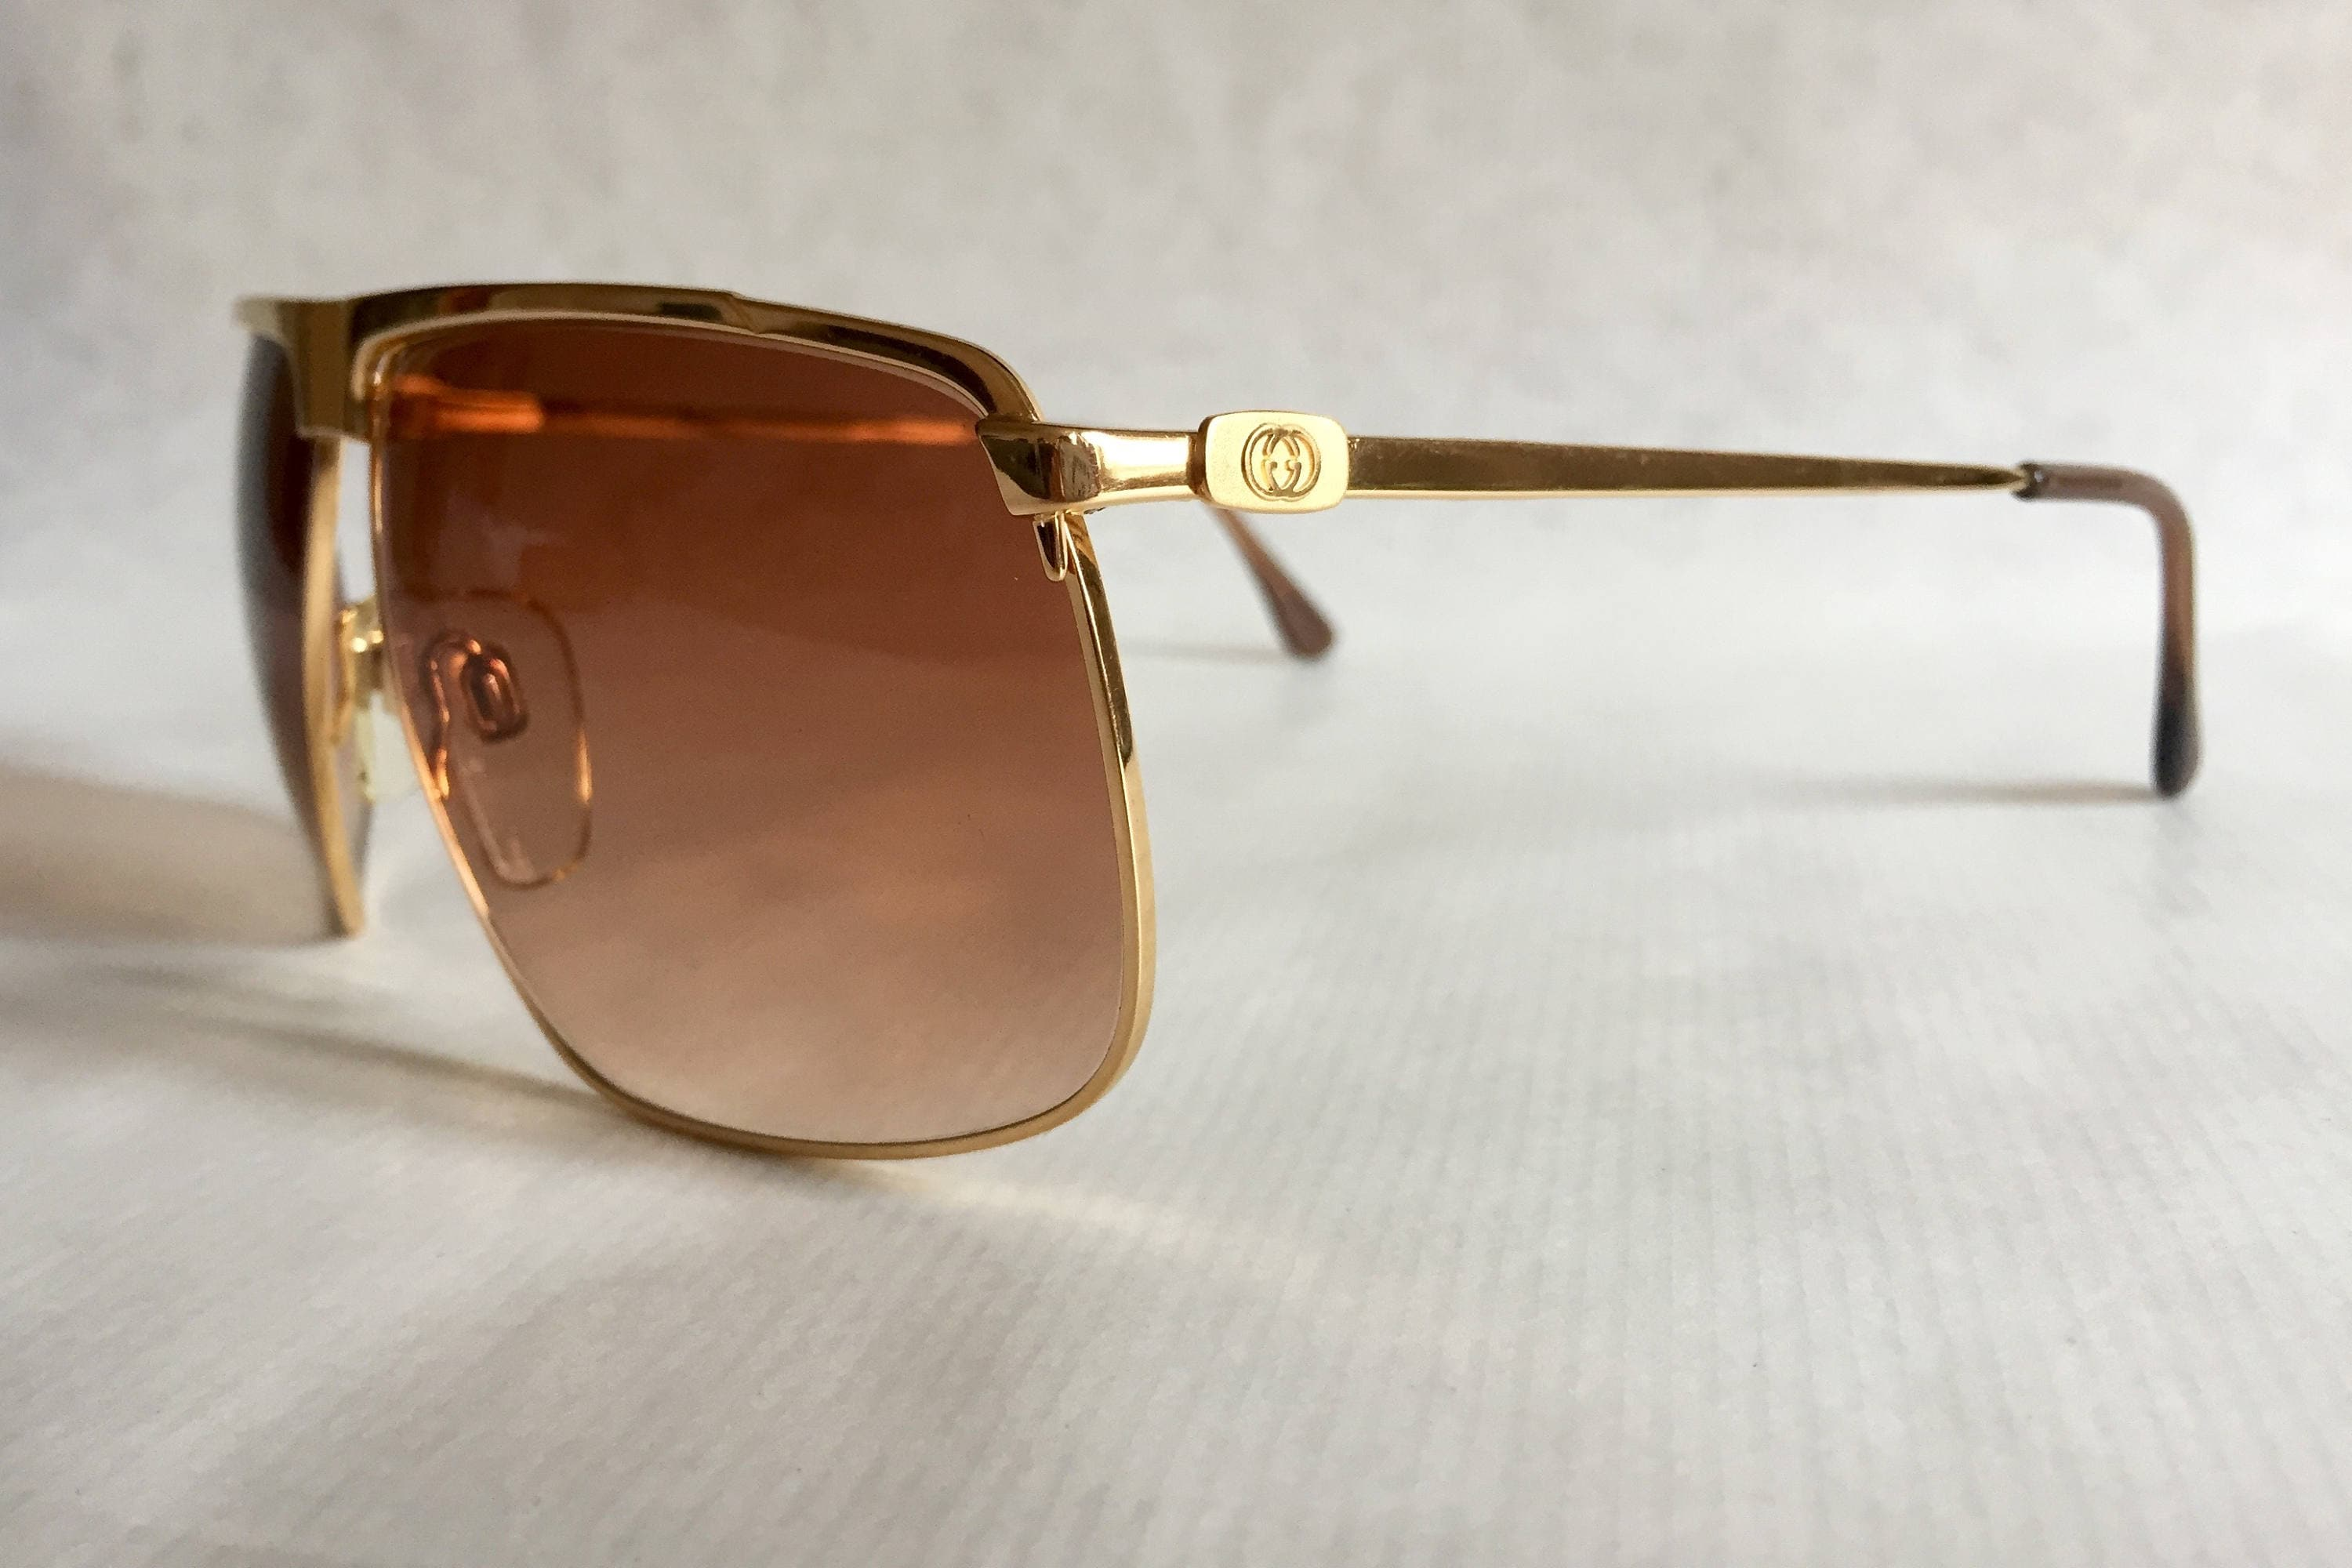 091f3ccd123 GUCCI GG40 22kt Gold Vintage Sunglasses New Old Stock including Original  Box. gallery photo gallery photo gallery photo gallery photo gallery photo  gallery ...